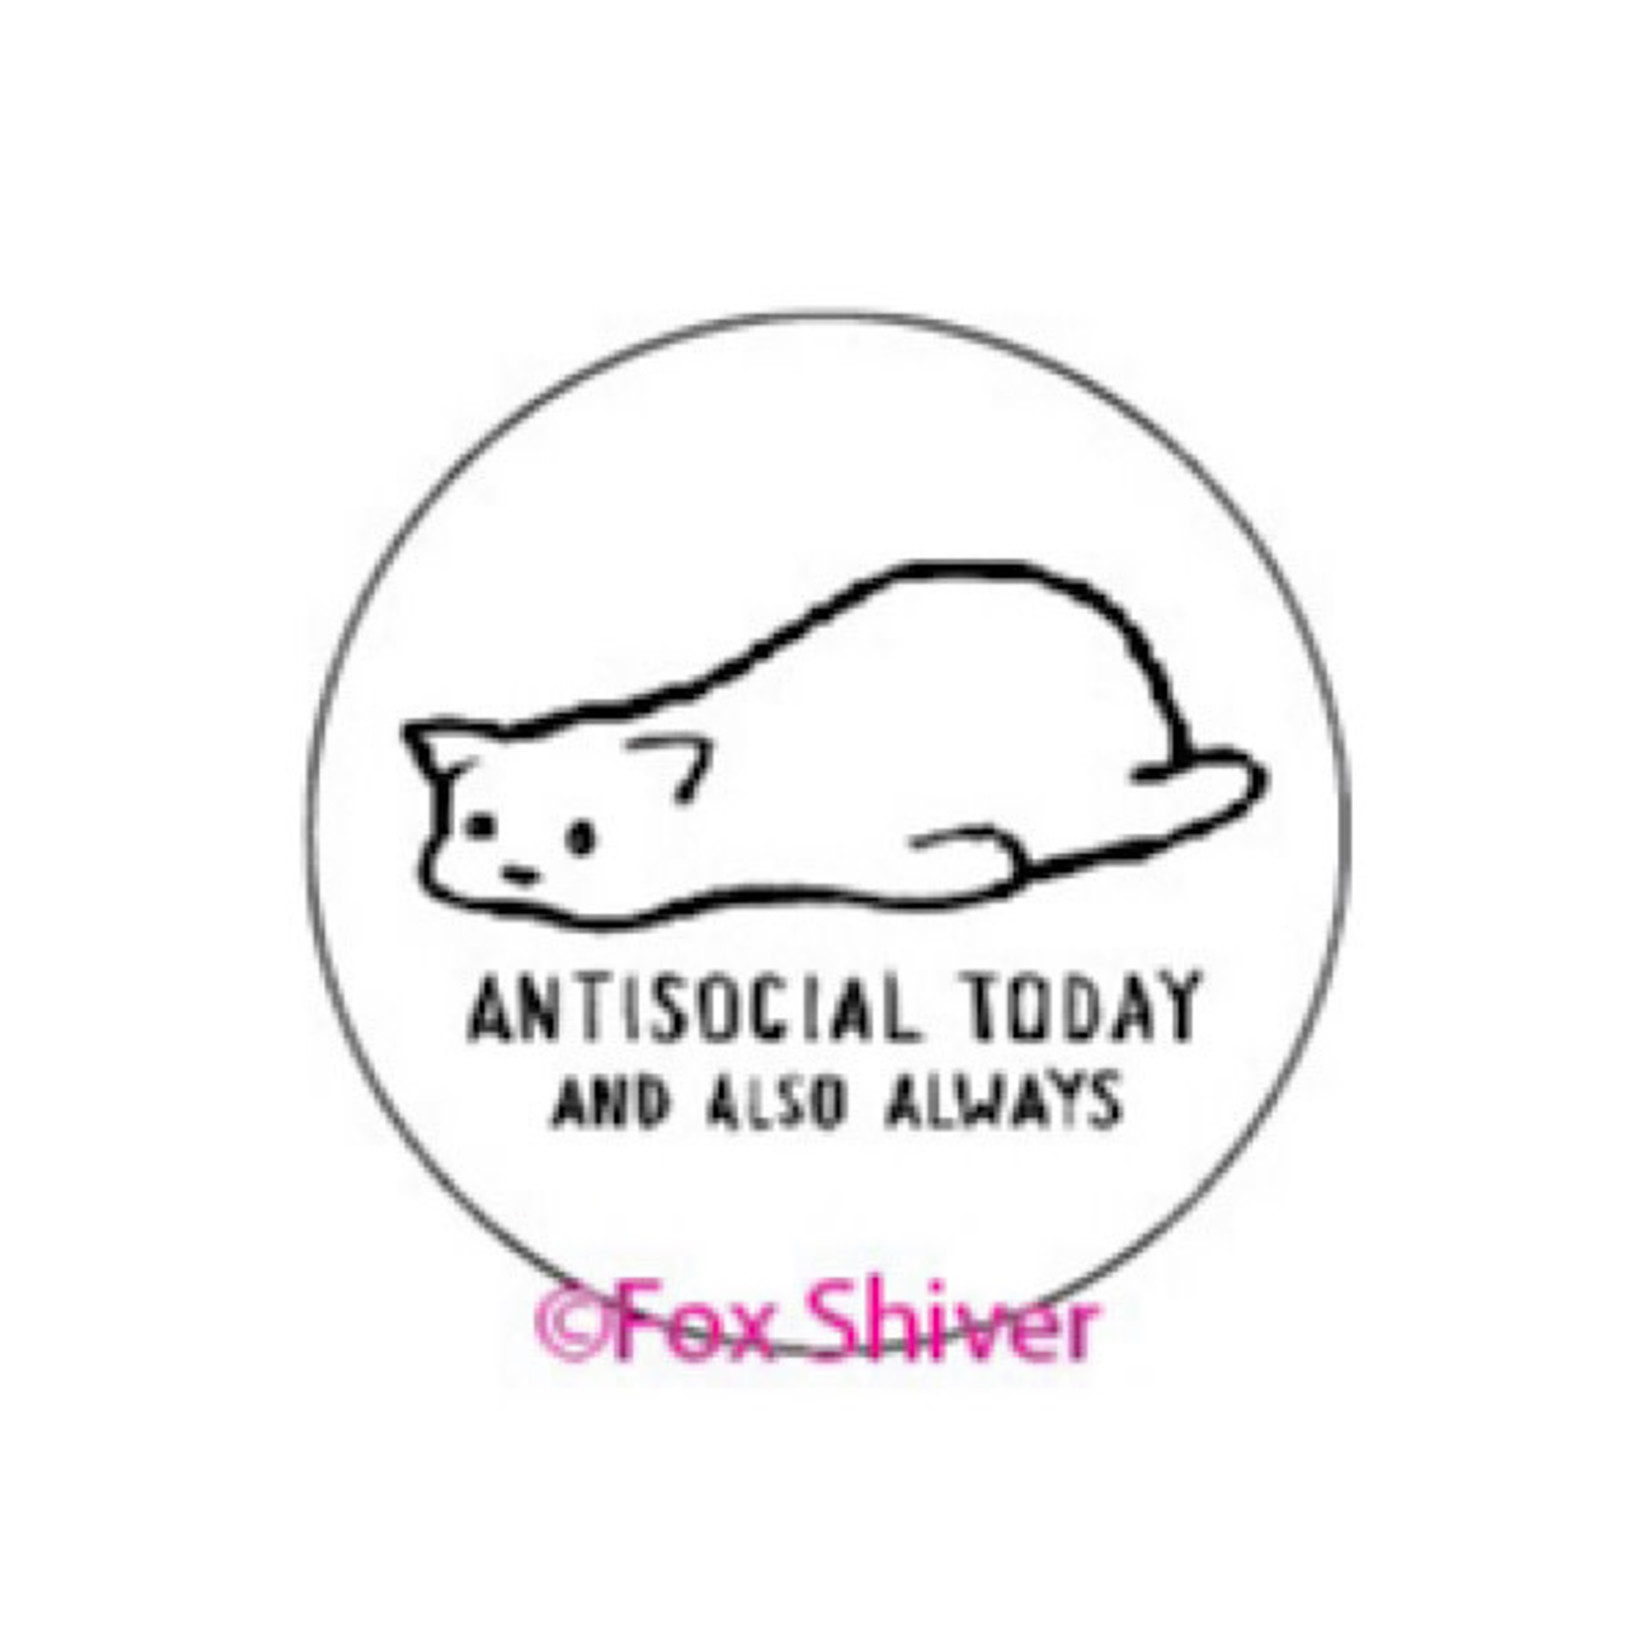 Magnet - Antisocial Today And Also Always (Cat)